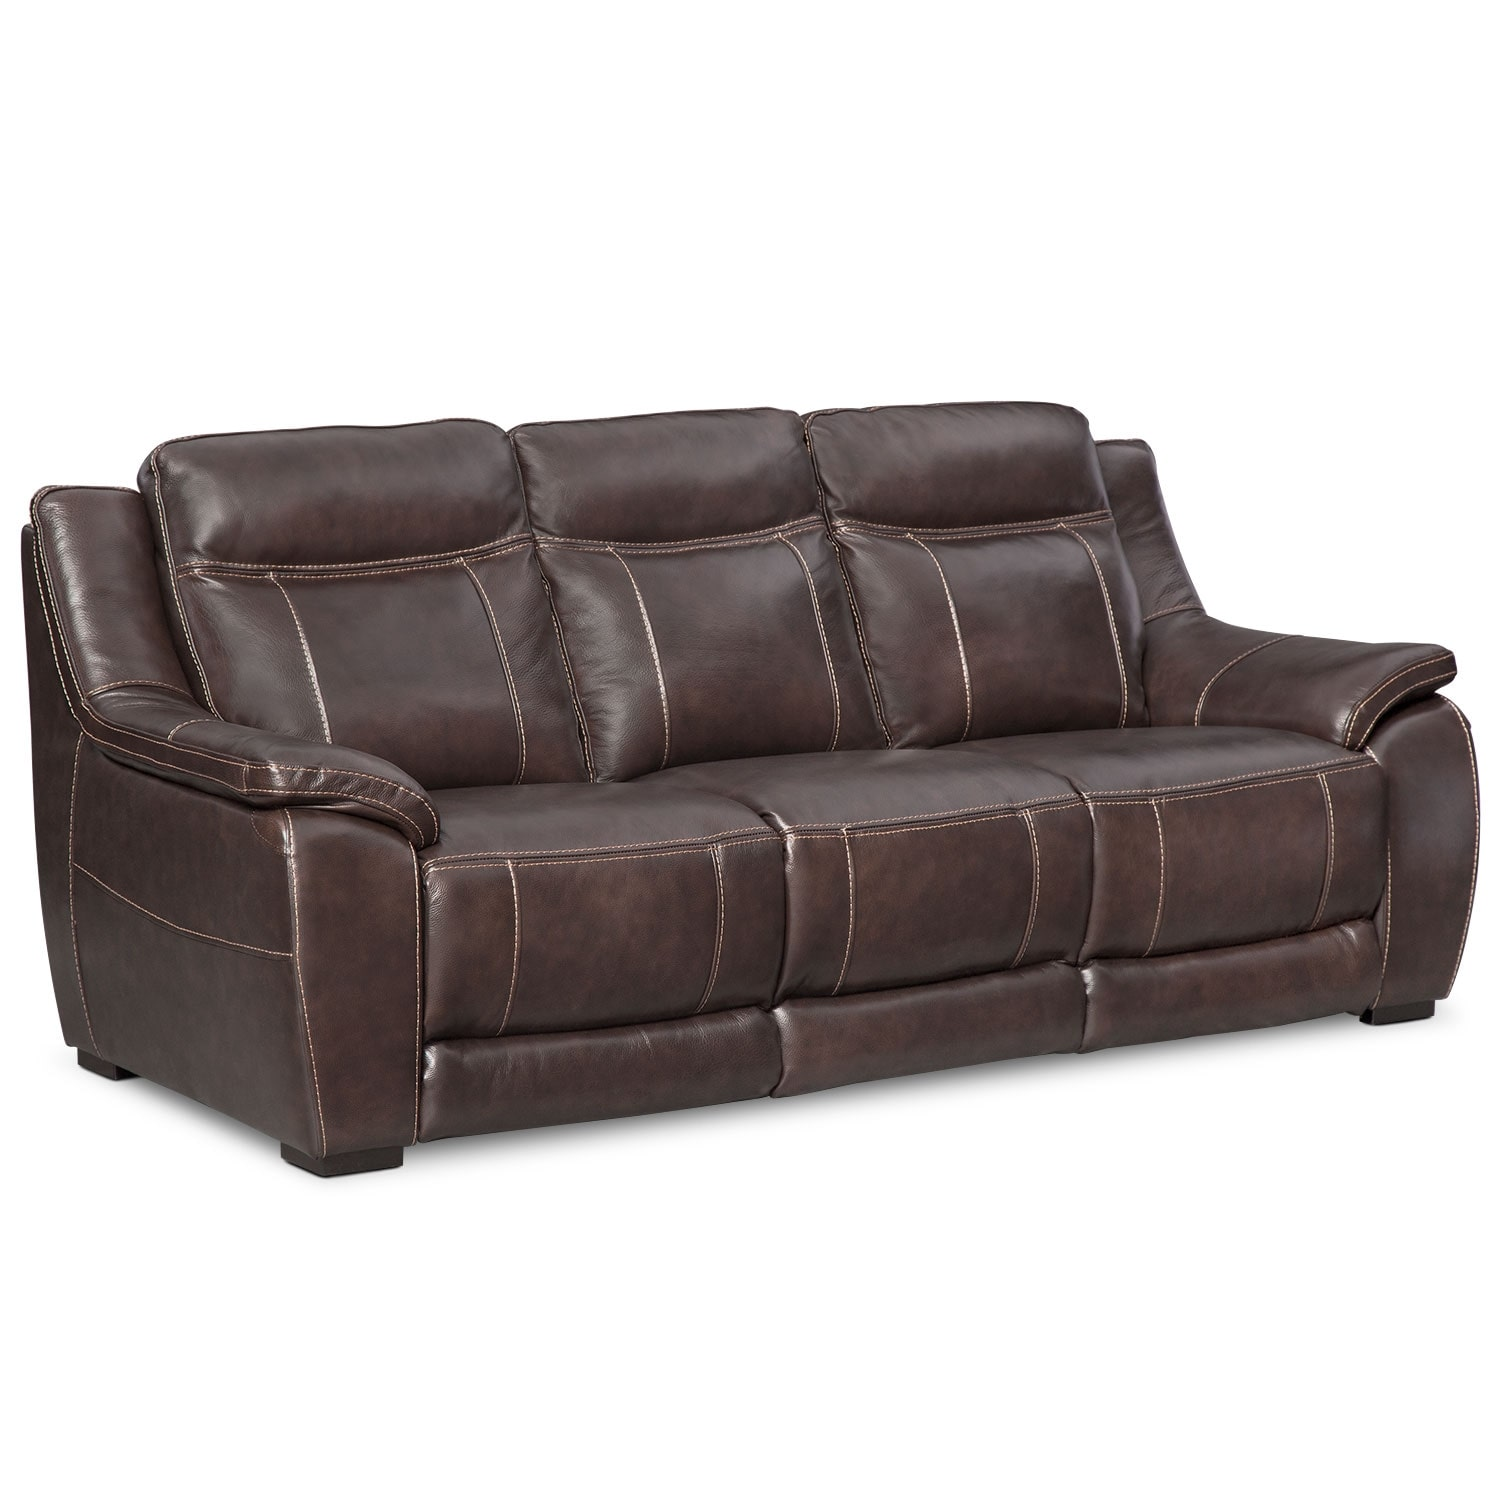 Lido Sofa   Brown Part 85